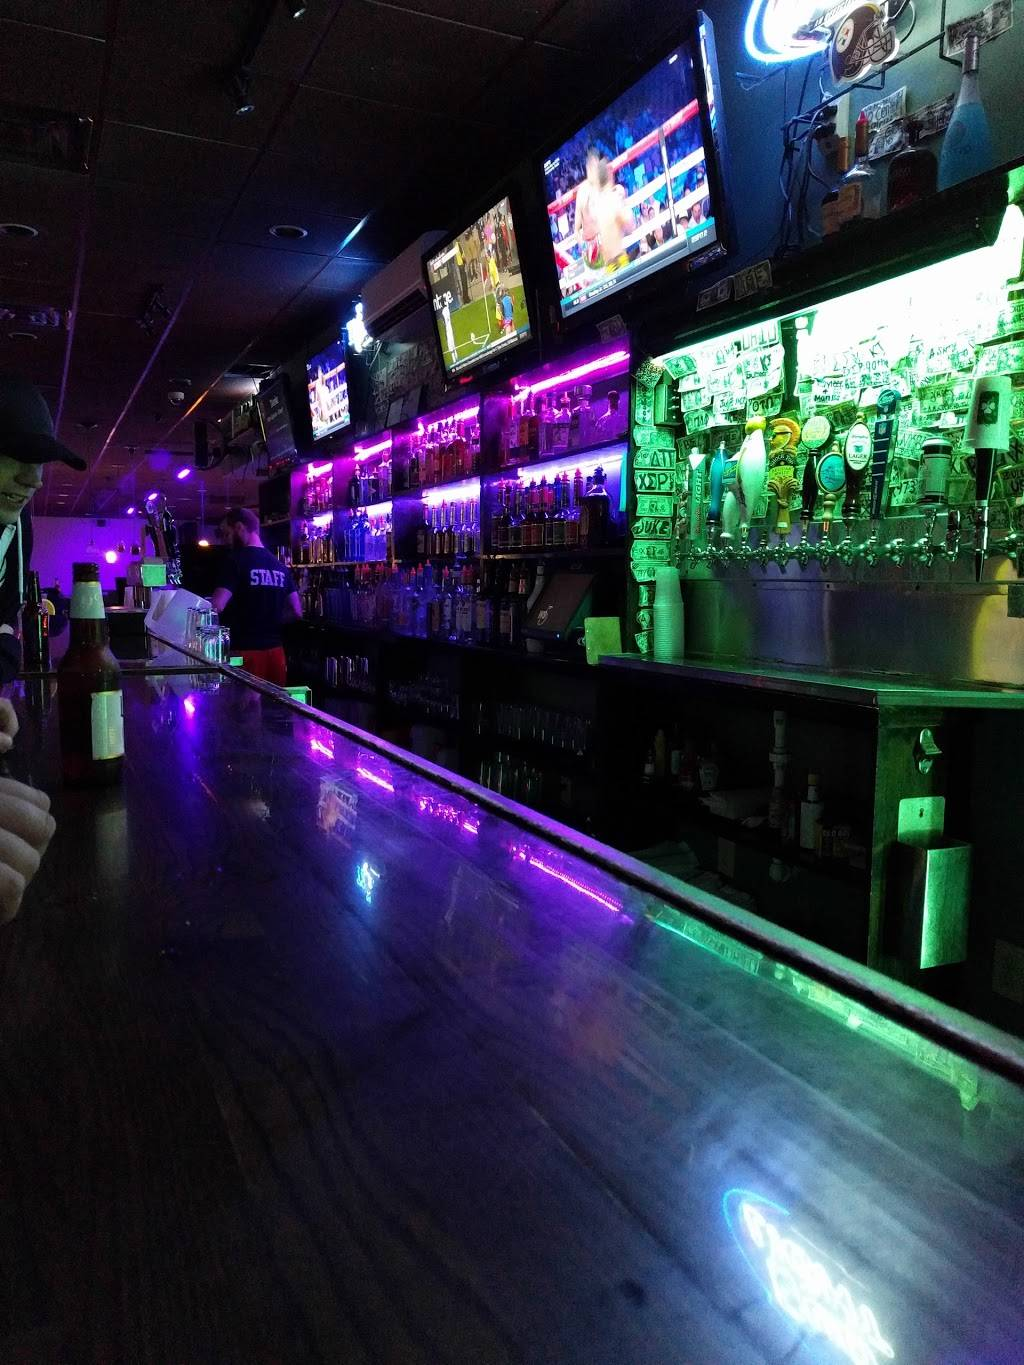 Capitol Bar and Grill   restaurant   45 E Main St, Bloomsburg, PA 17815, USA   5703871111 OR +1 570-387-1111